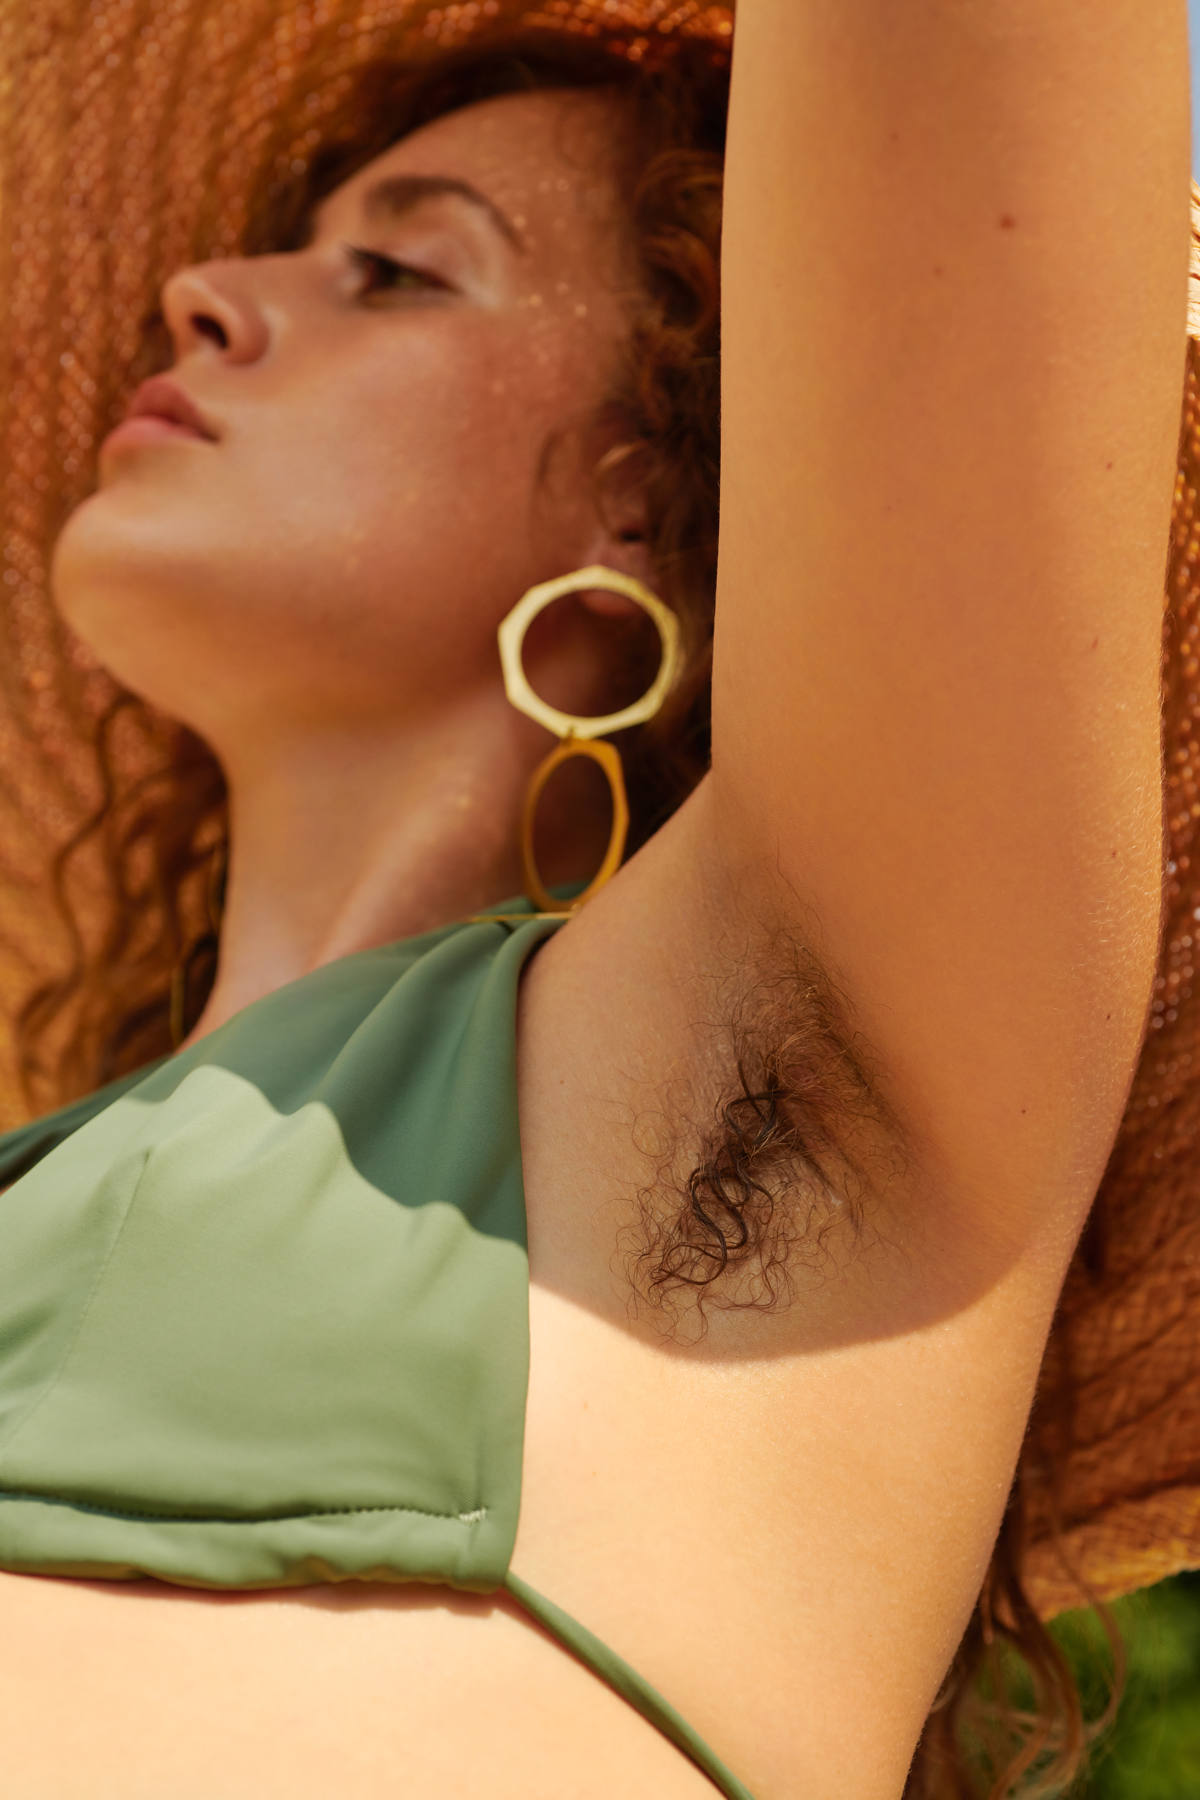 armpit hair, beauty, beauty editorial, millennials, women, girls, fashion, in fashion, fashion trends, beauty trends, luxiders magazine, luxiders, sustainable culture, armed angels, Christina Hasenauer, Joanna Bacas, Anna Dömling, Christianna Quack, bikini, trikini, swimsuits, Margaret and Hermione, Tencel, fremdformat, Steinrohner, Essentials for Zula, Spatz Hutdesign Passau, Anekdot Boutique, JAN 'N JUNE, FJNE